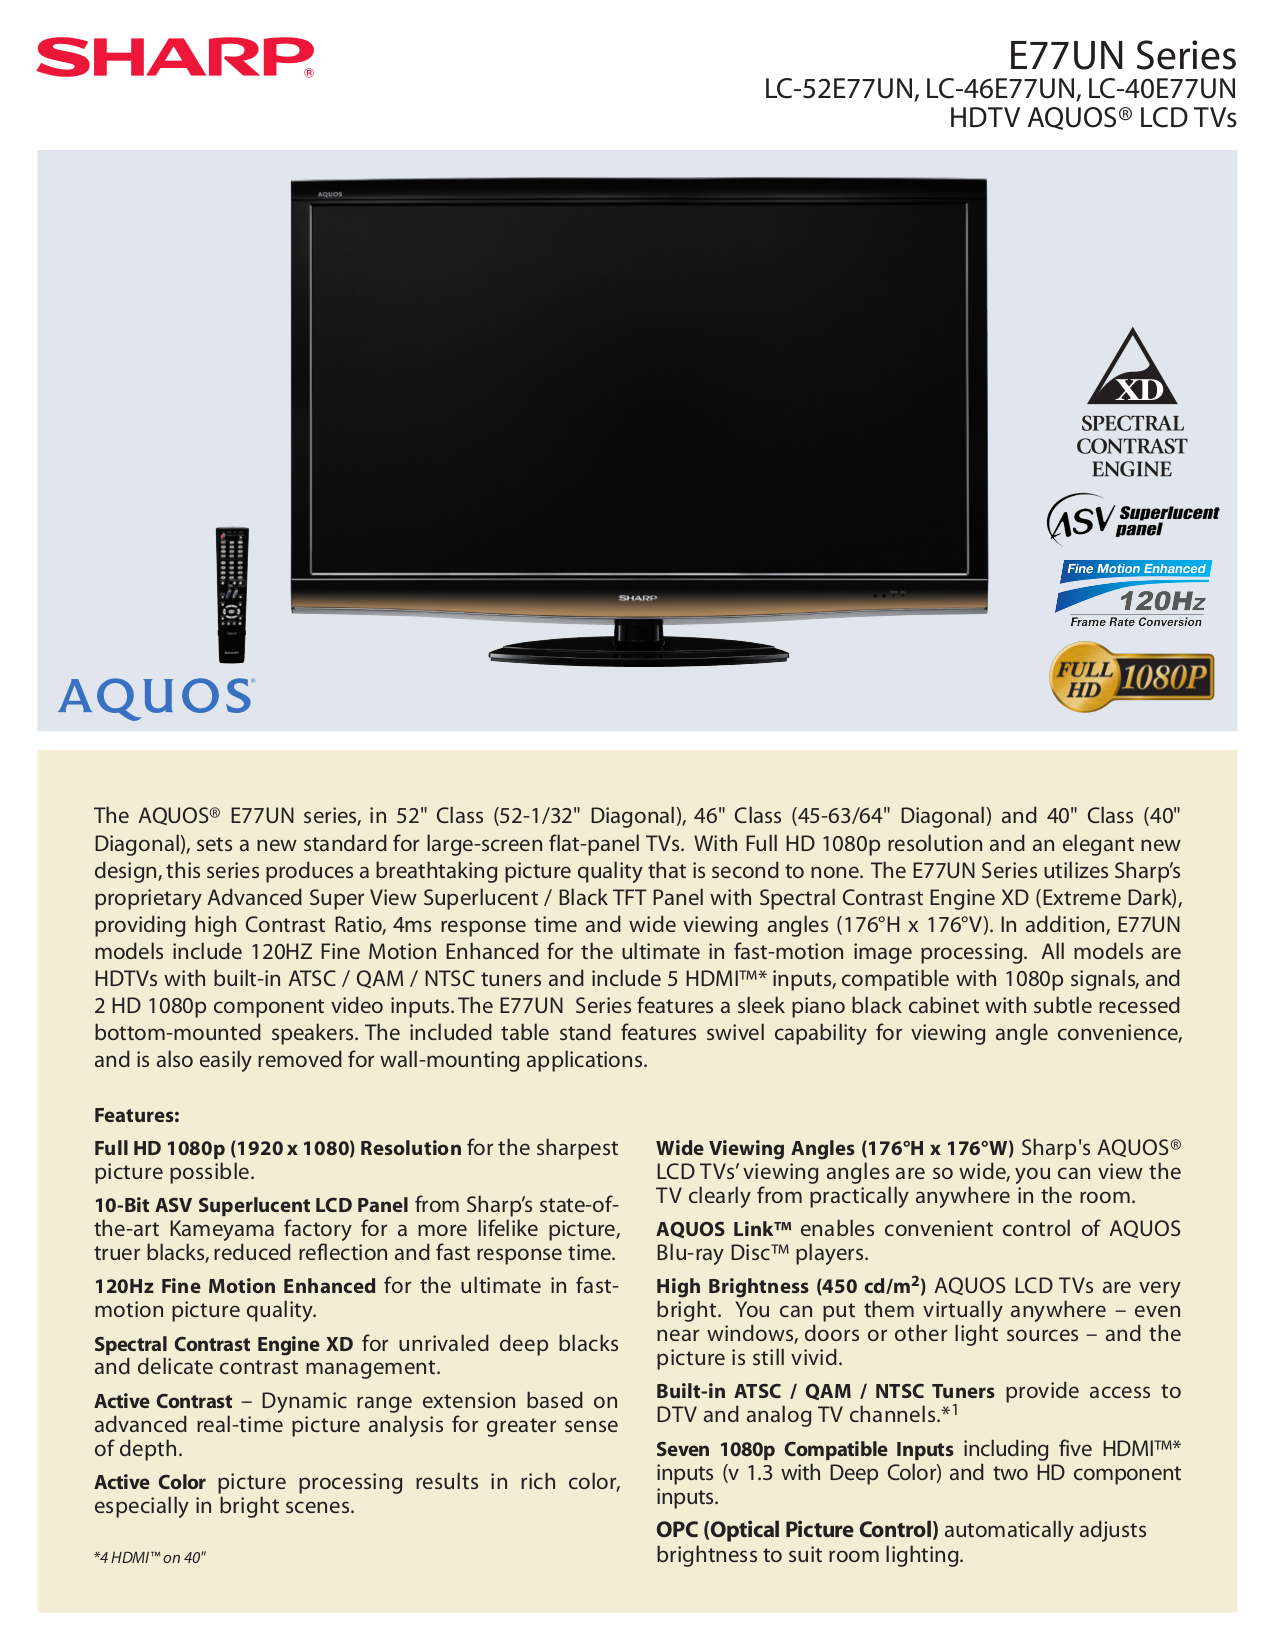 download free pdf for sharp aquos lc 52e77un tv manual rh umlib com Sharp ManualsOnline KB Sharp 6525P5